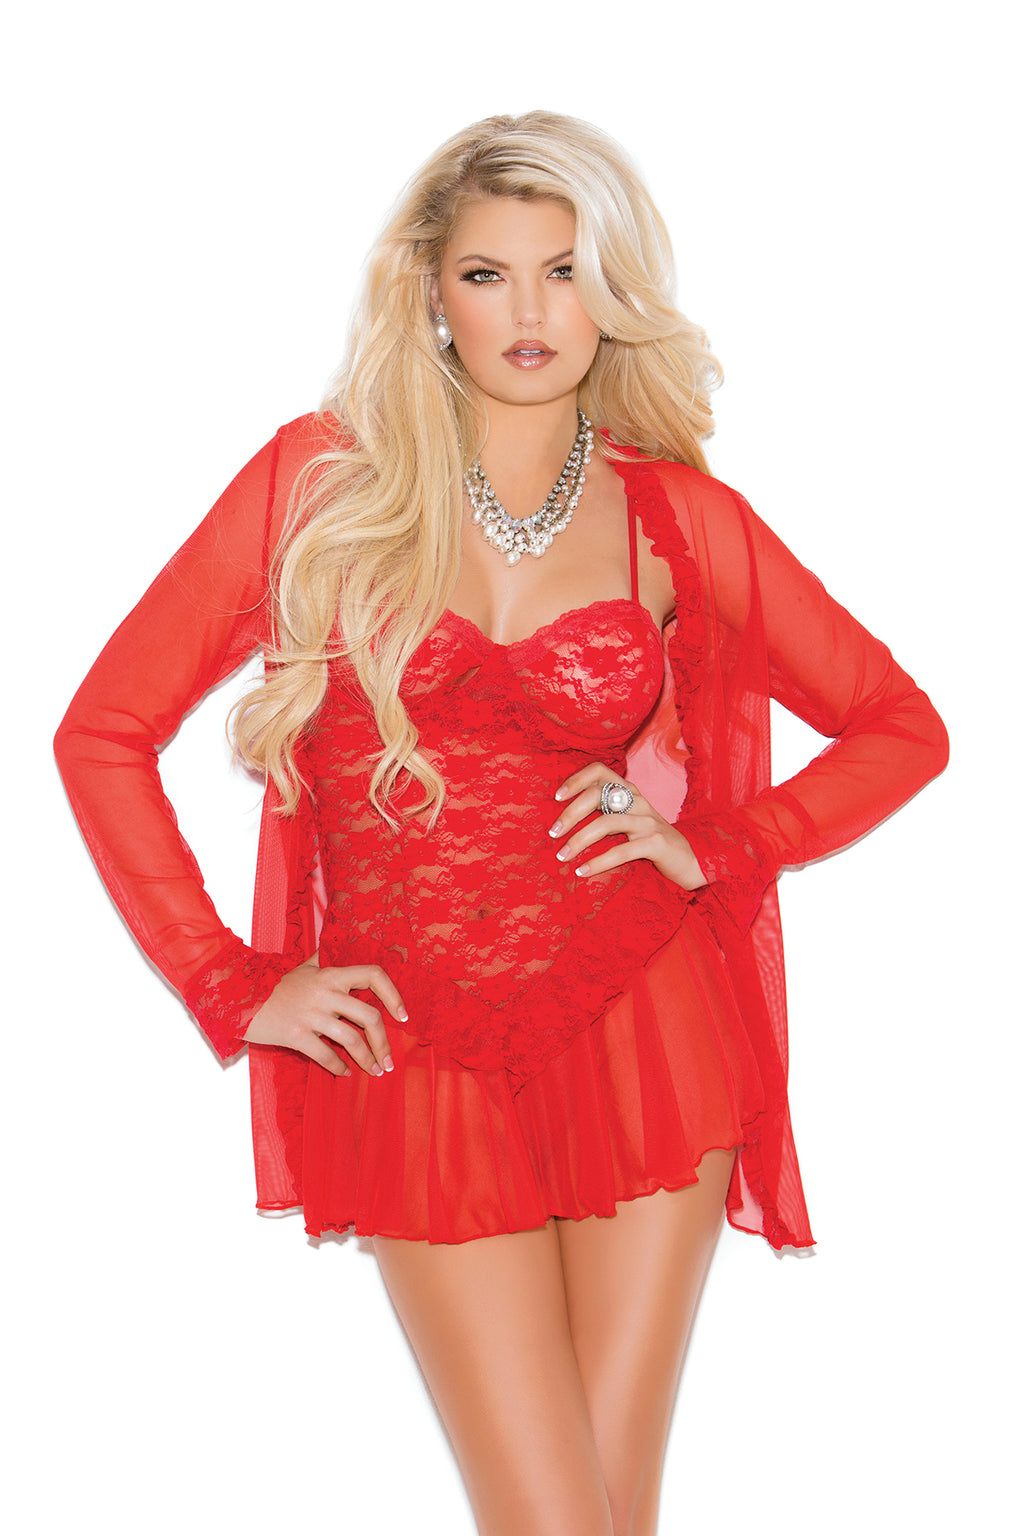 Elegant Moments 4088 Red Lace Babydoll with Jacket and G-String